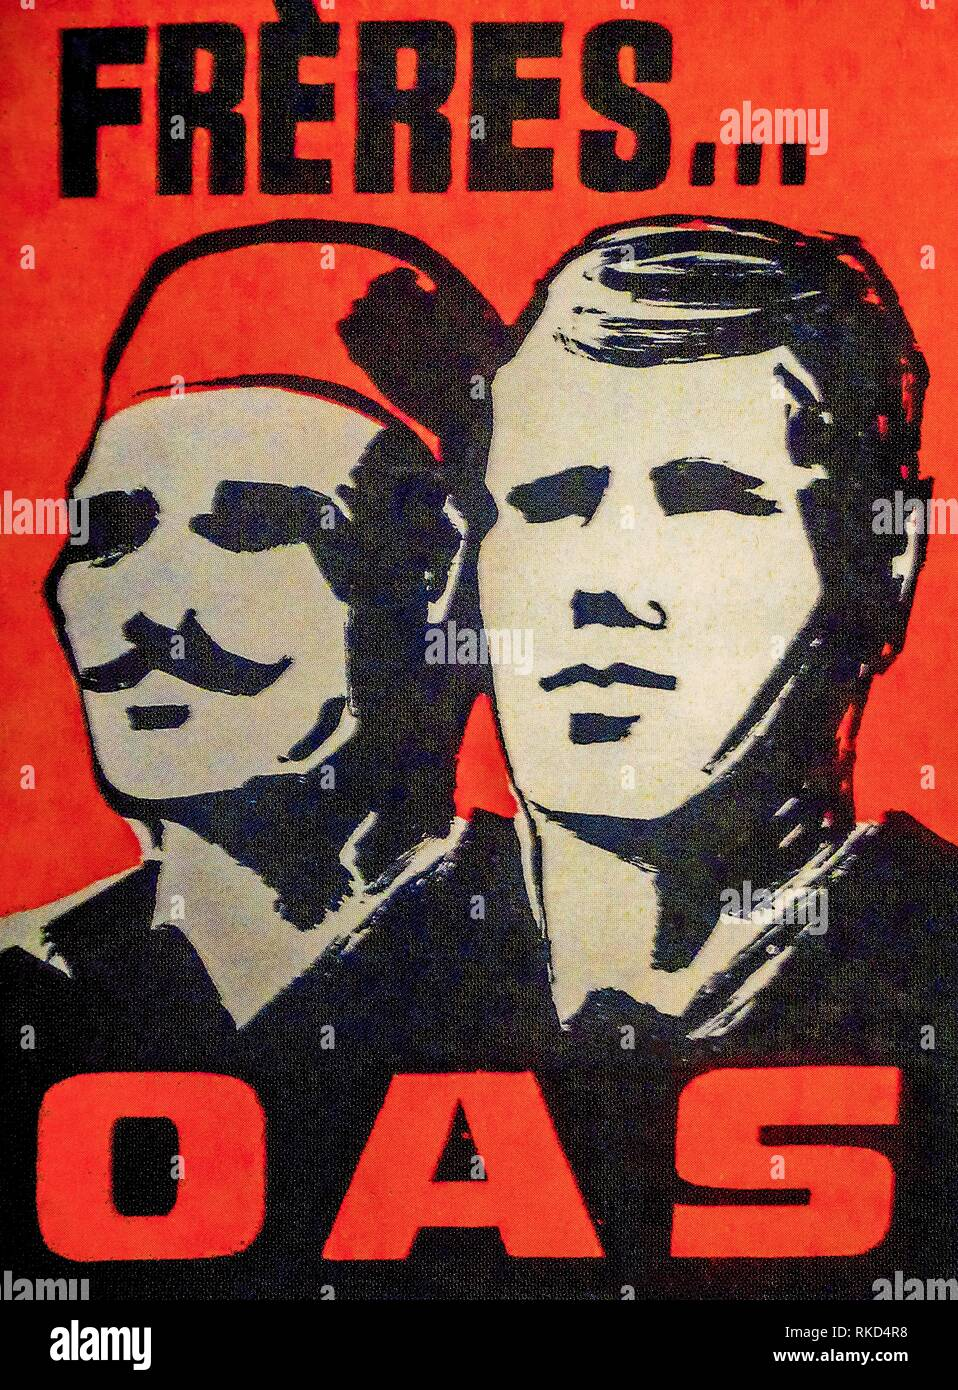 France, Algier, poster for ´´OAS´´.The Organisation armée secrète or OAS (meaning Secret Army Organisation) was a short-lived right-wingFrench - Stock Image